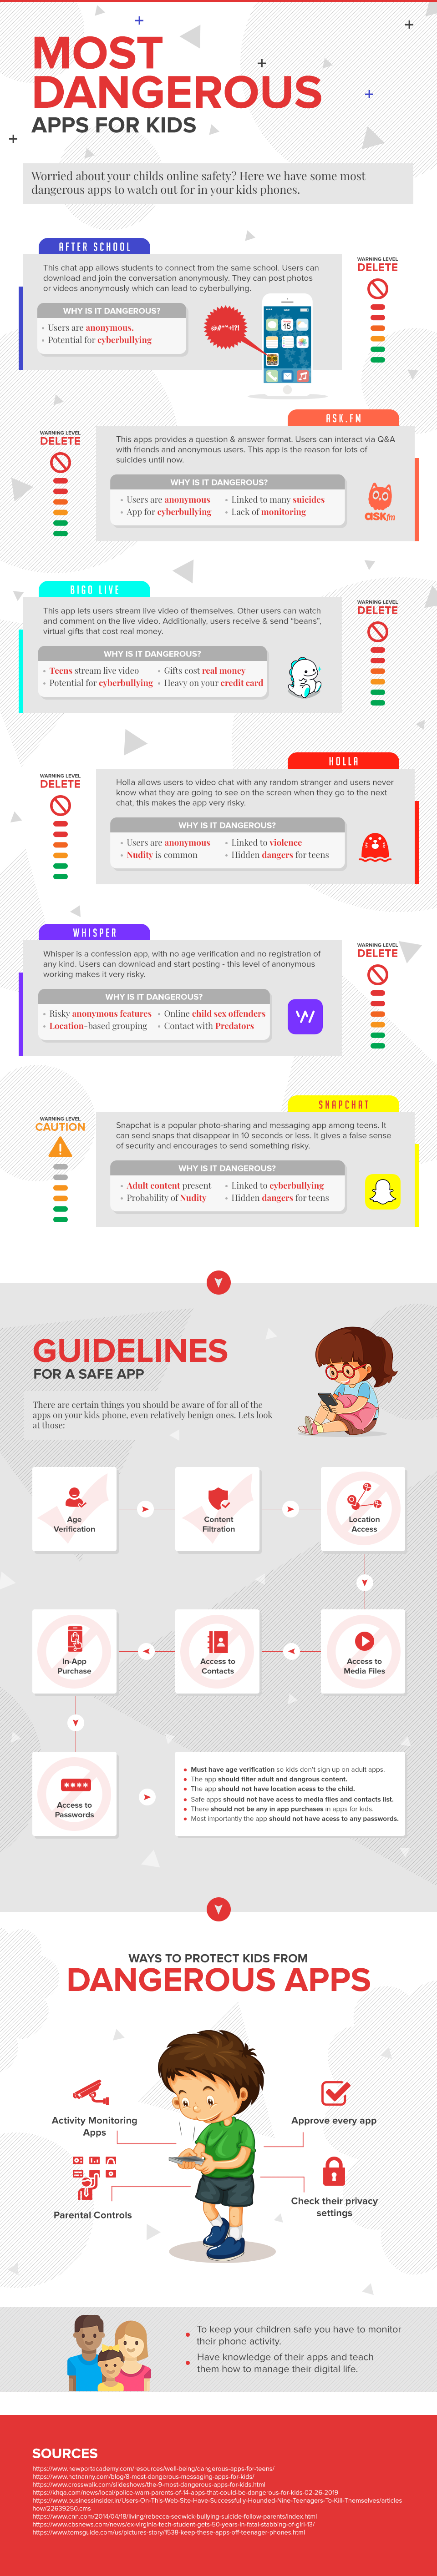 Most Dangerous Apps for Kids